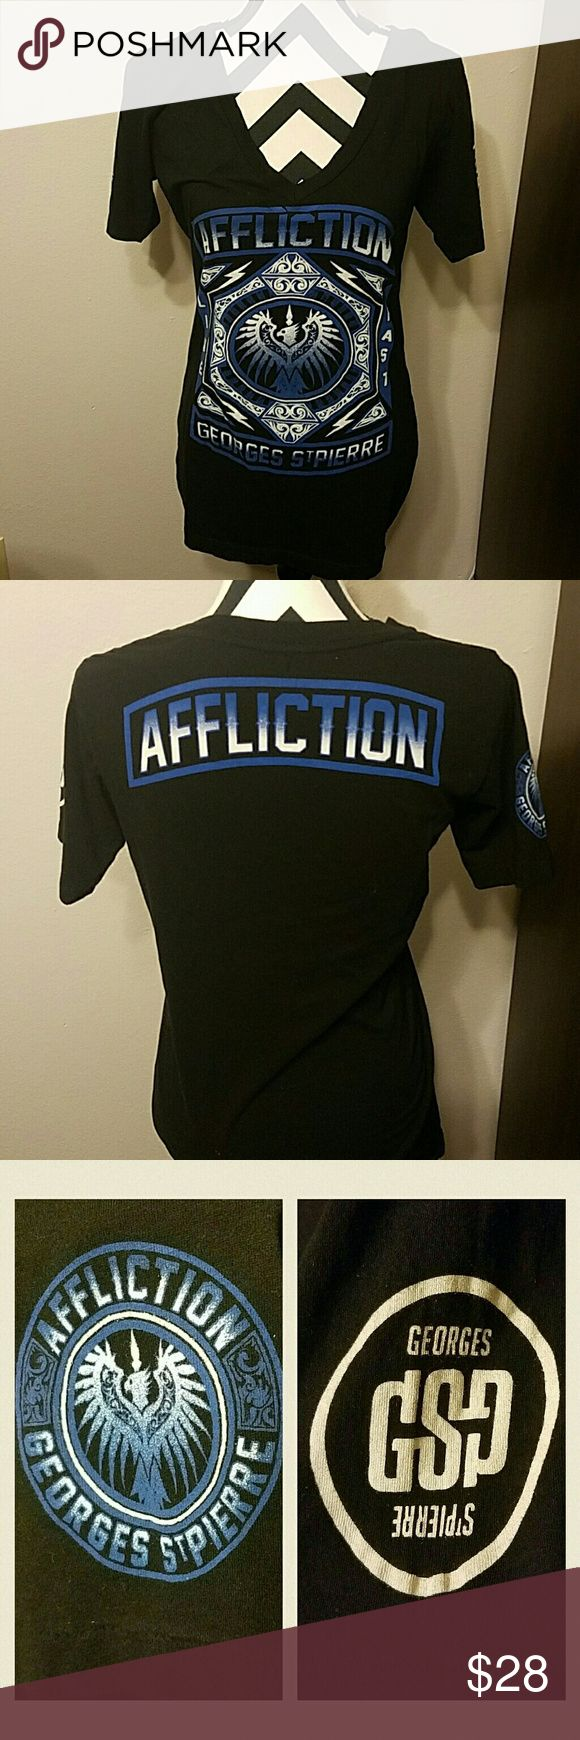 Affliction Georges St. Pierre UFC 158 prestige walkout tshirt for women in blue and black.  The 3rd pic shows emblems on side sleeves.  EUC, only worn that night.  Tags: ufc, mma, affliction, sinful, miss me Affliction Tops